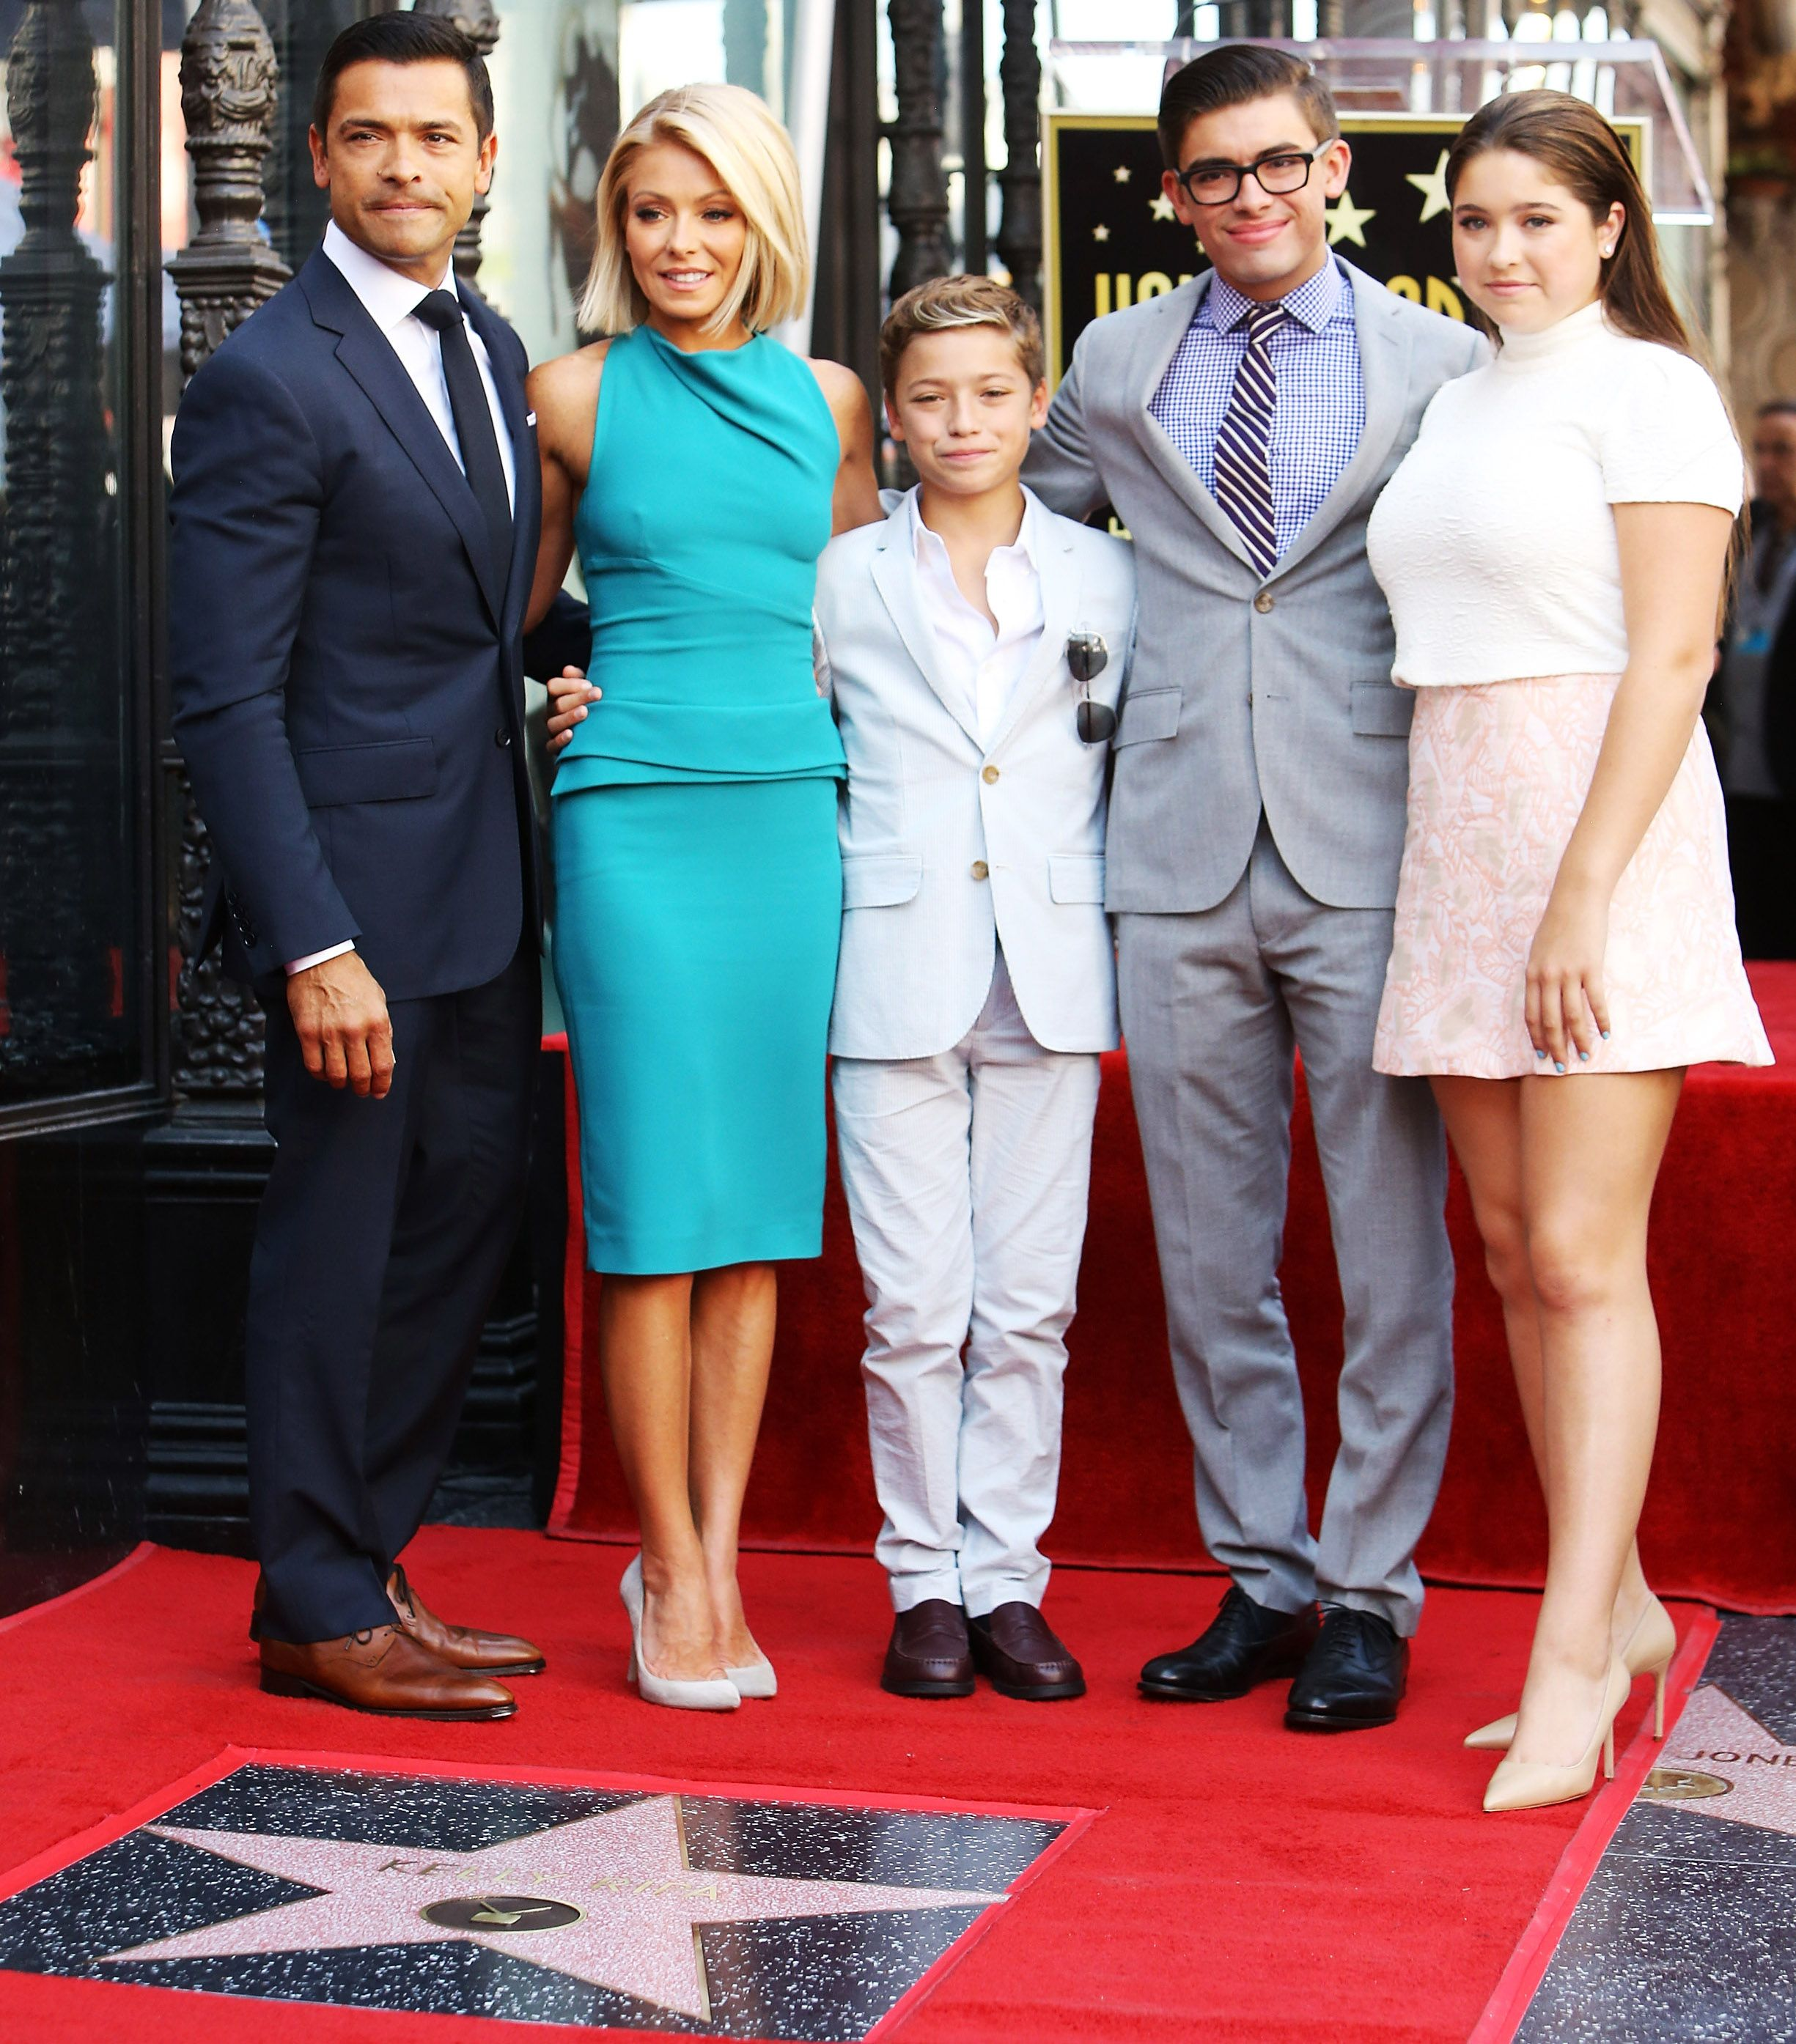 Kelly Ripa Celebrates Star on Hollywood Walk of Fame with Hubby Mark  Consuelos and Their Three Kids